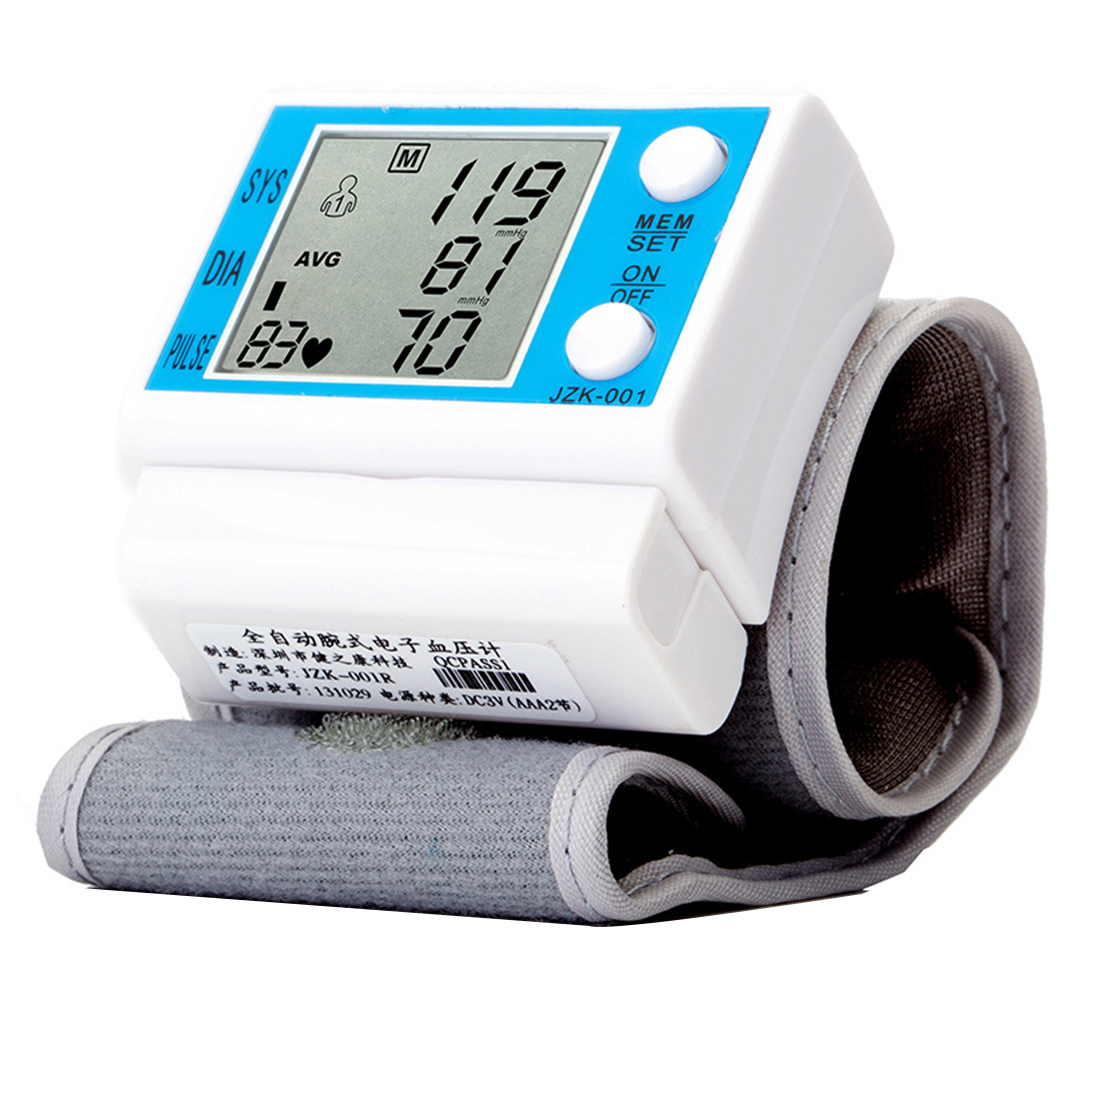 Householde Health Care Automatic Wrist Blood Pressure Monitor Digital LCD Wrist Cuff Blood Pressure Meter 8